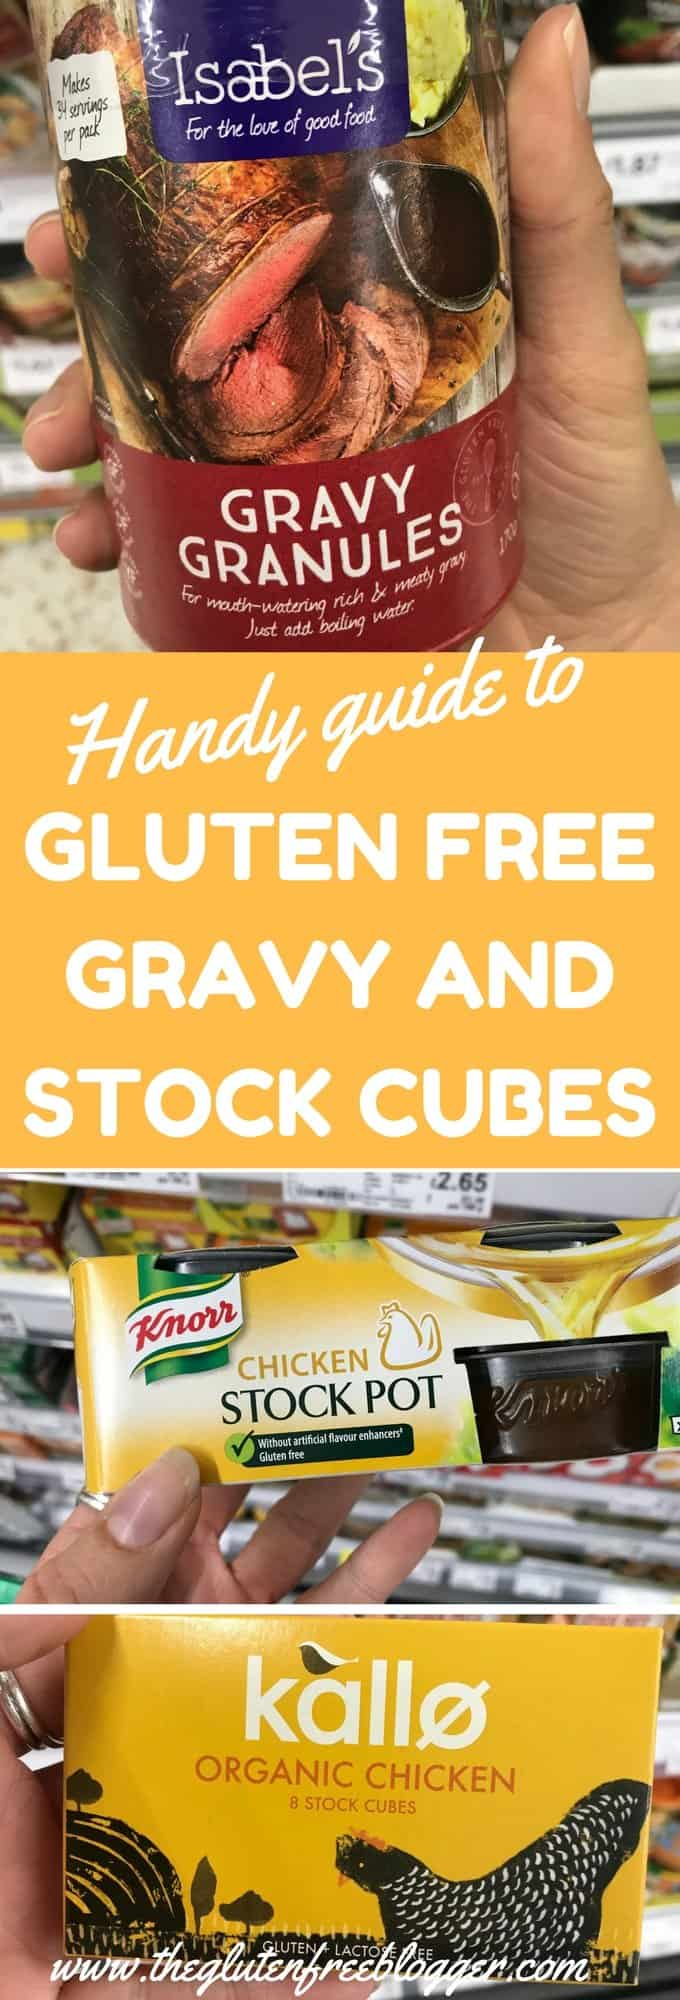 Guide to gluten free gravy and stock cubes and pots from The Gluten Free Blogger. www.theglutenfreeblogger.com